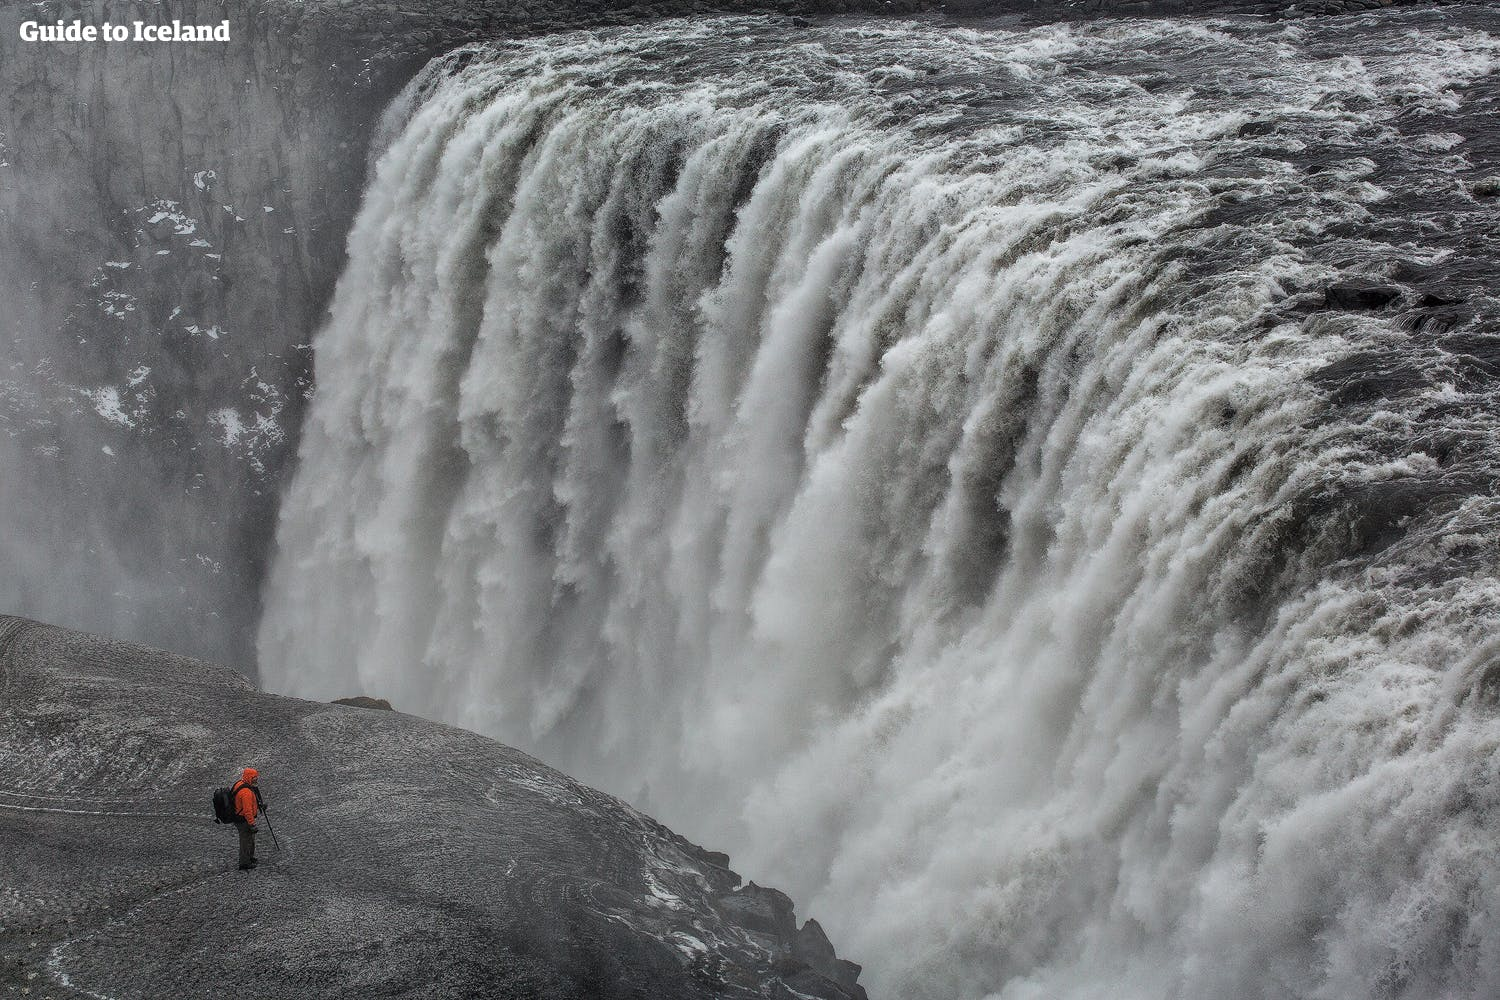 Dettifoss in North Iceland rumbles with such great power that you can feel the earth shake beneath your feet.